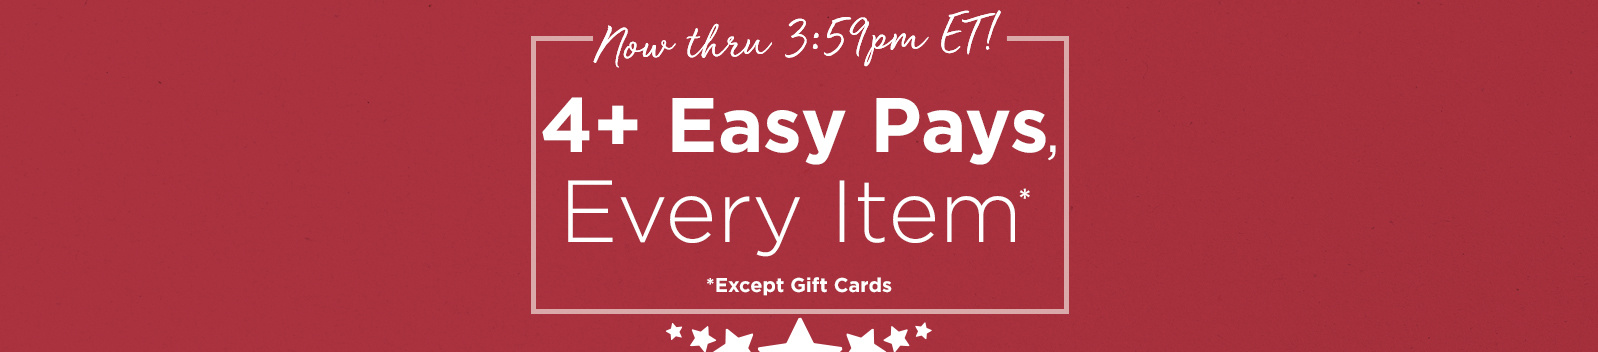 Now thru 3:59pm ET! 4+ Easy Pays, Every Item Except Gift Cards